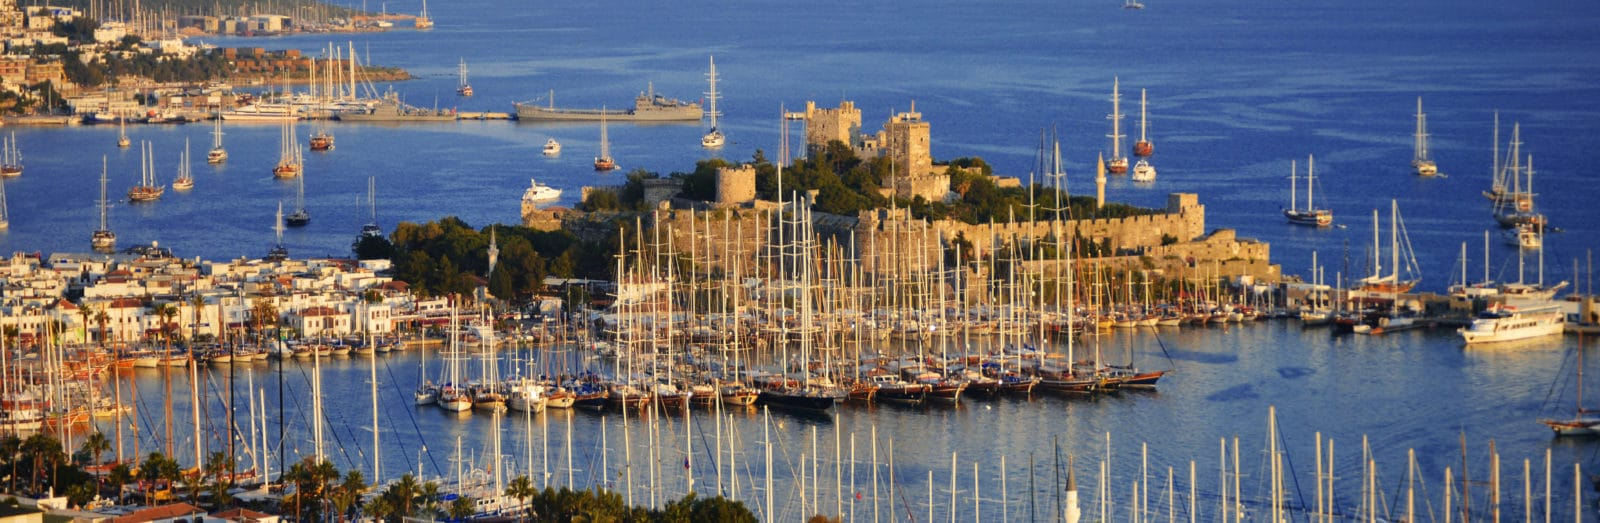 Shore excursion in Bodrum